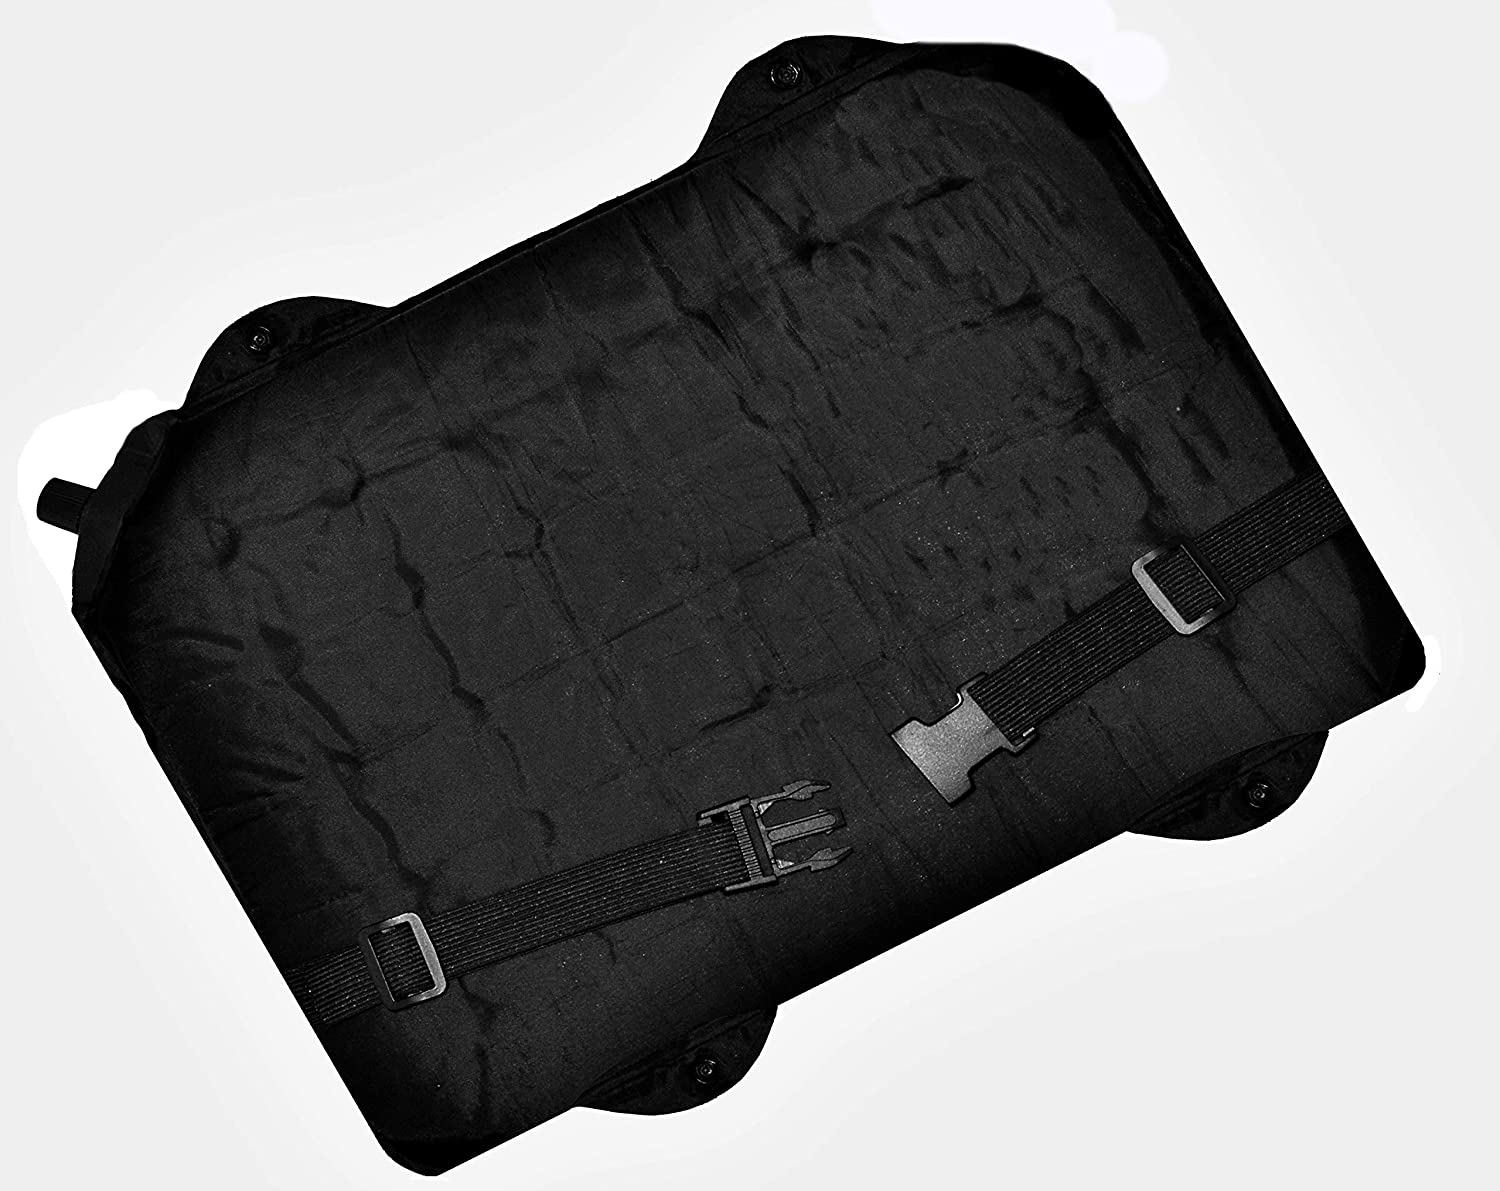 Air Chair Pad 3-1 Self-Inflating Seat Cushion Lumbar Support Back Cushion. Save Your Back, Pad Your seat and Support Your Lumbar Lightweight, Folds in Half for Easy Transport.